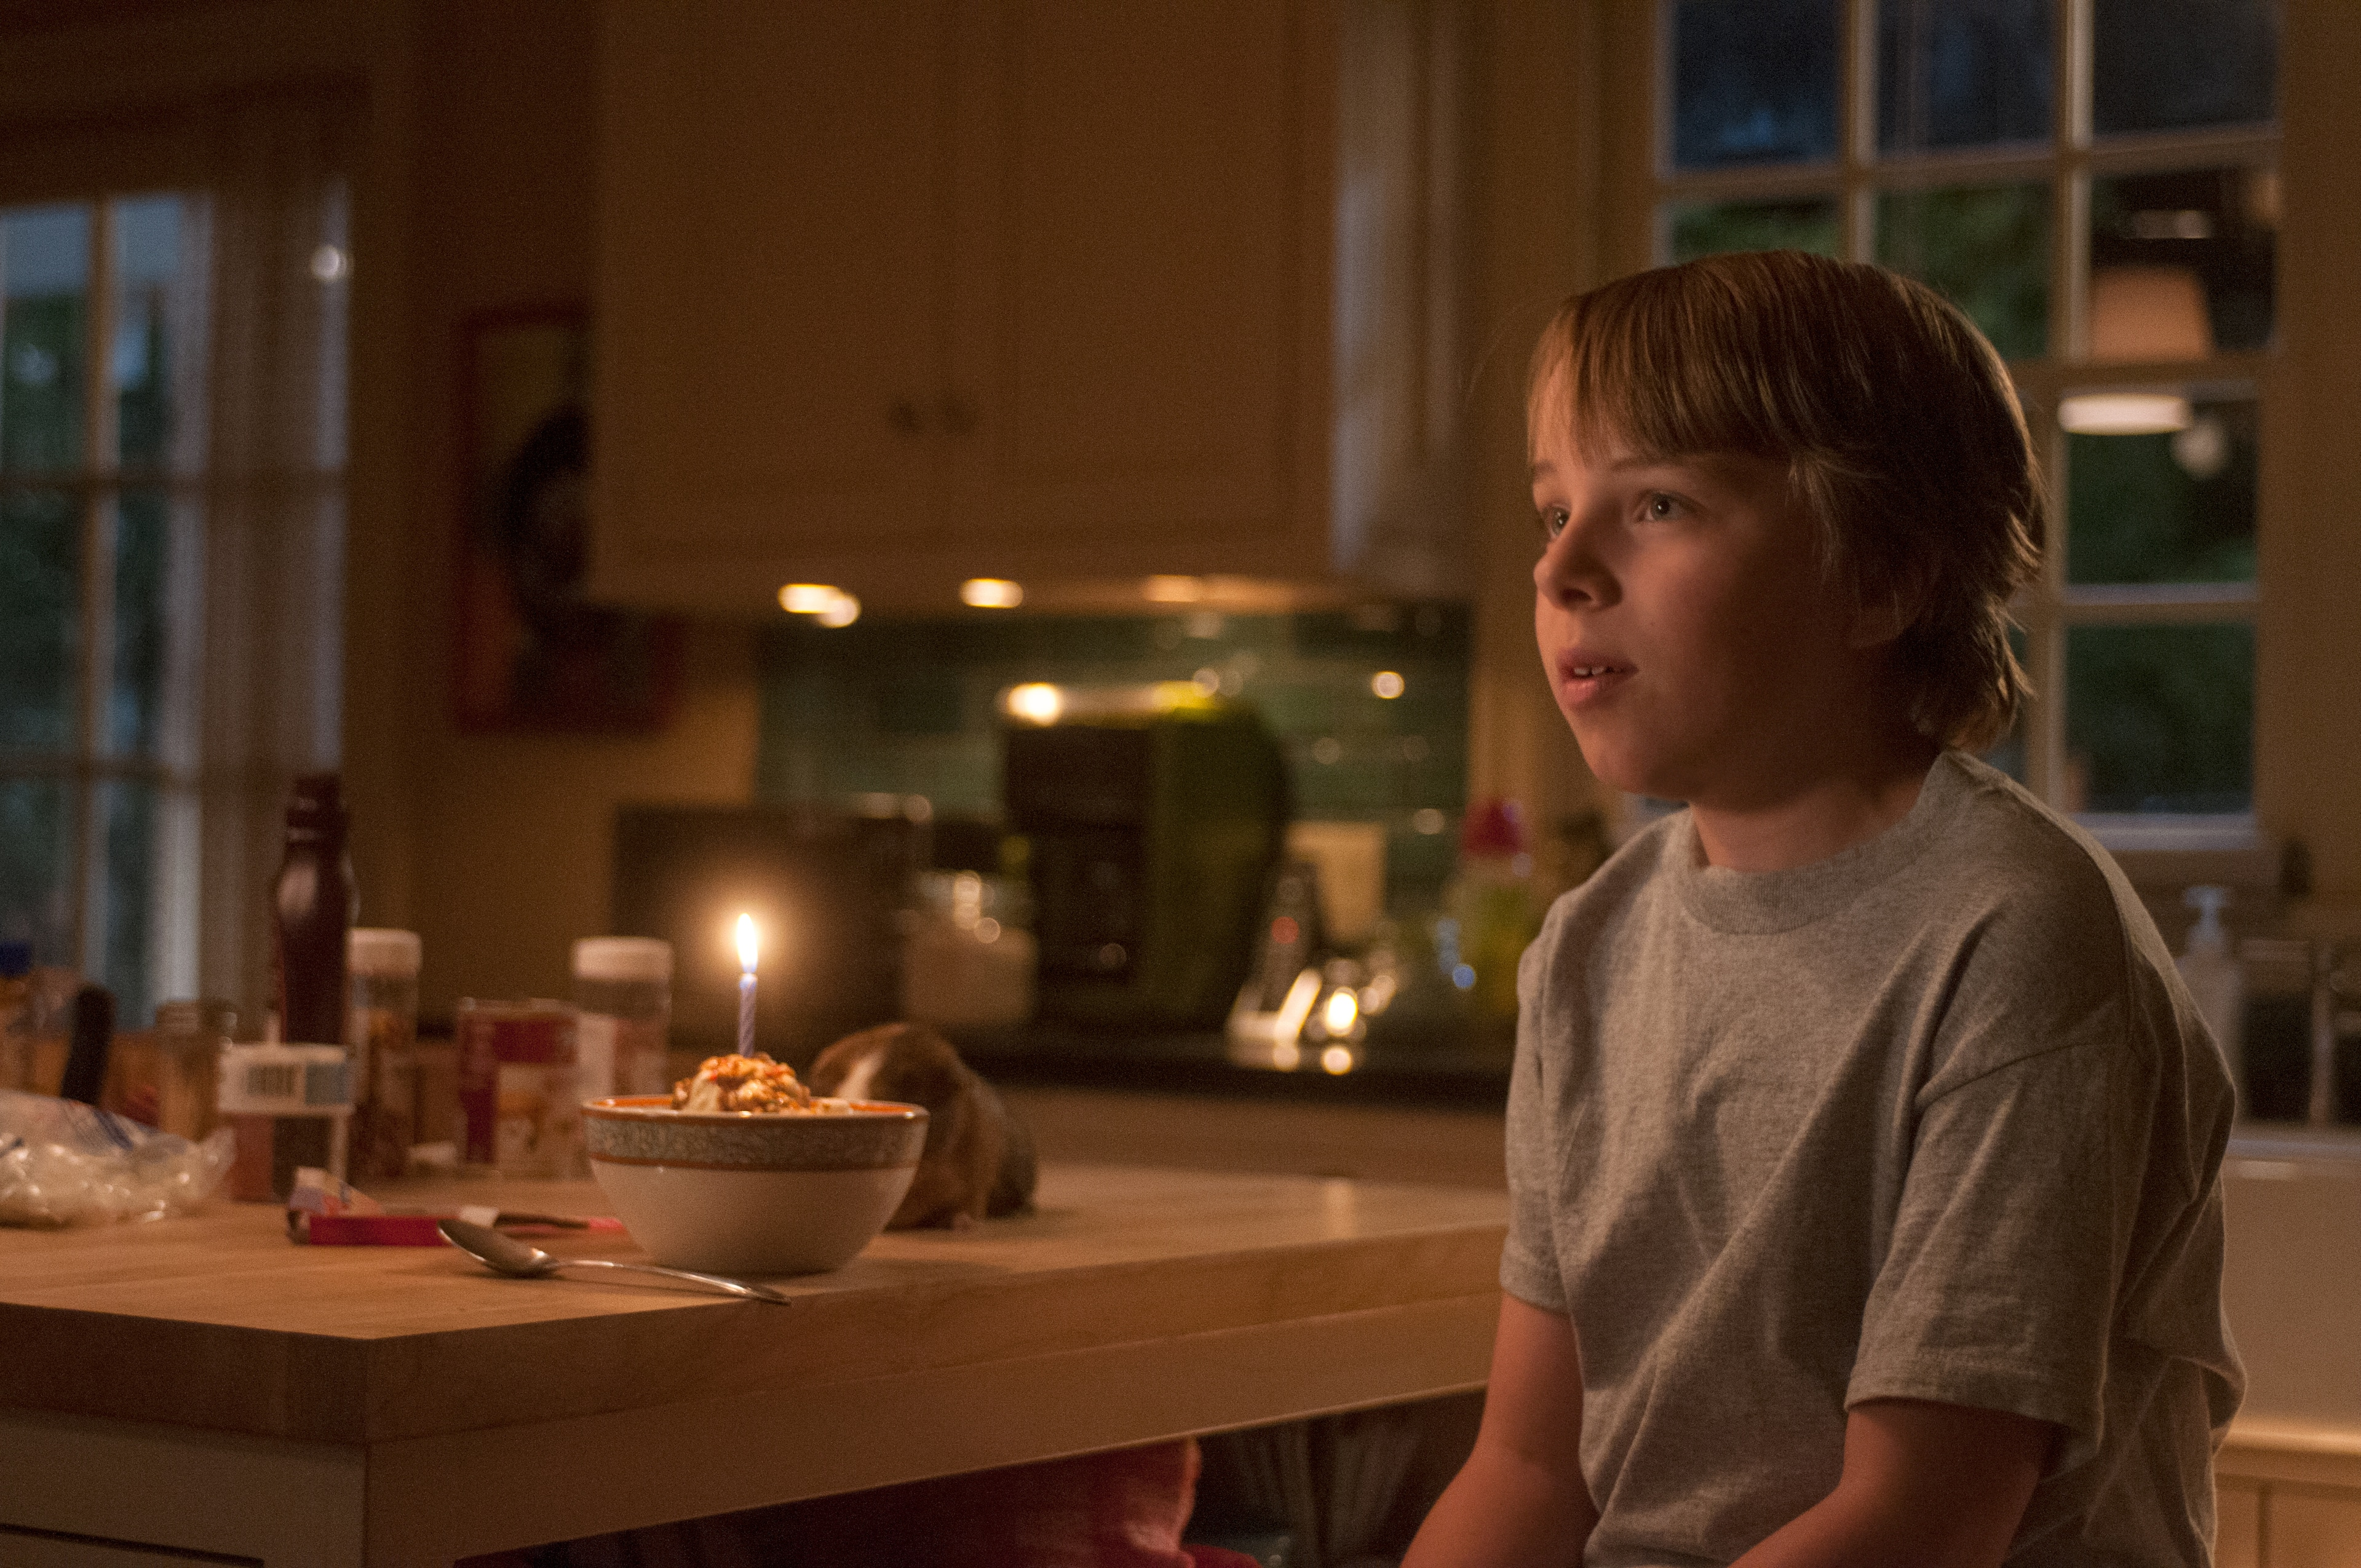 Ed Oxenbould as Alexander Cooper sitting in front of a bowl of ice cream with a lit candle in it